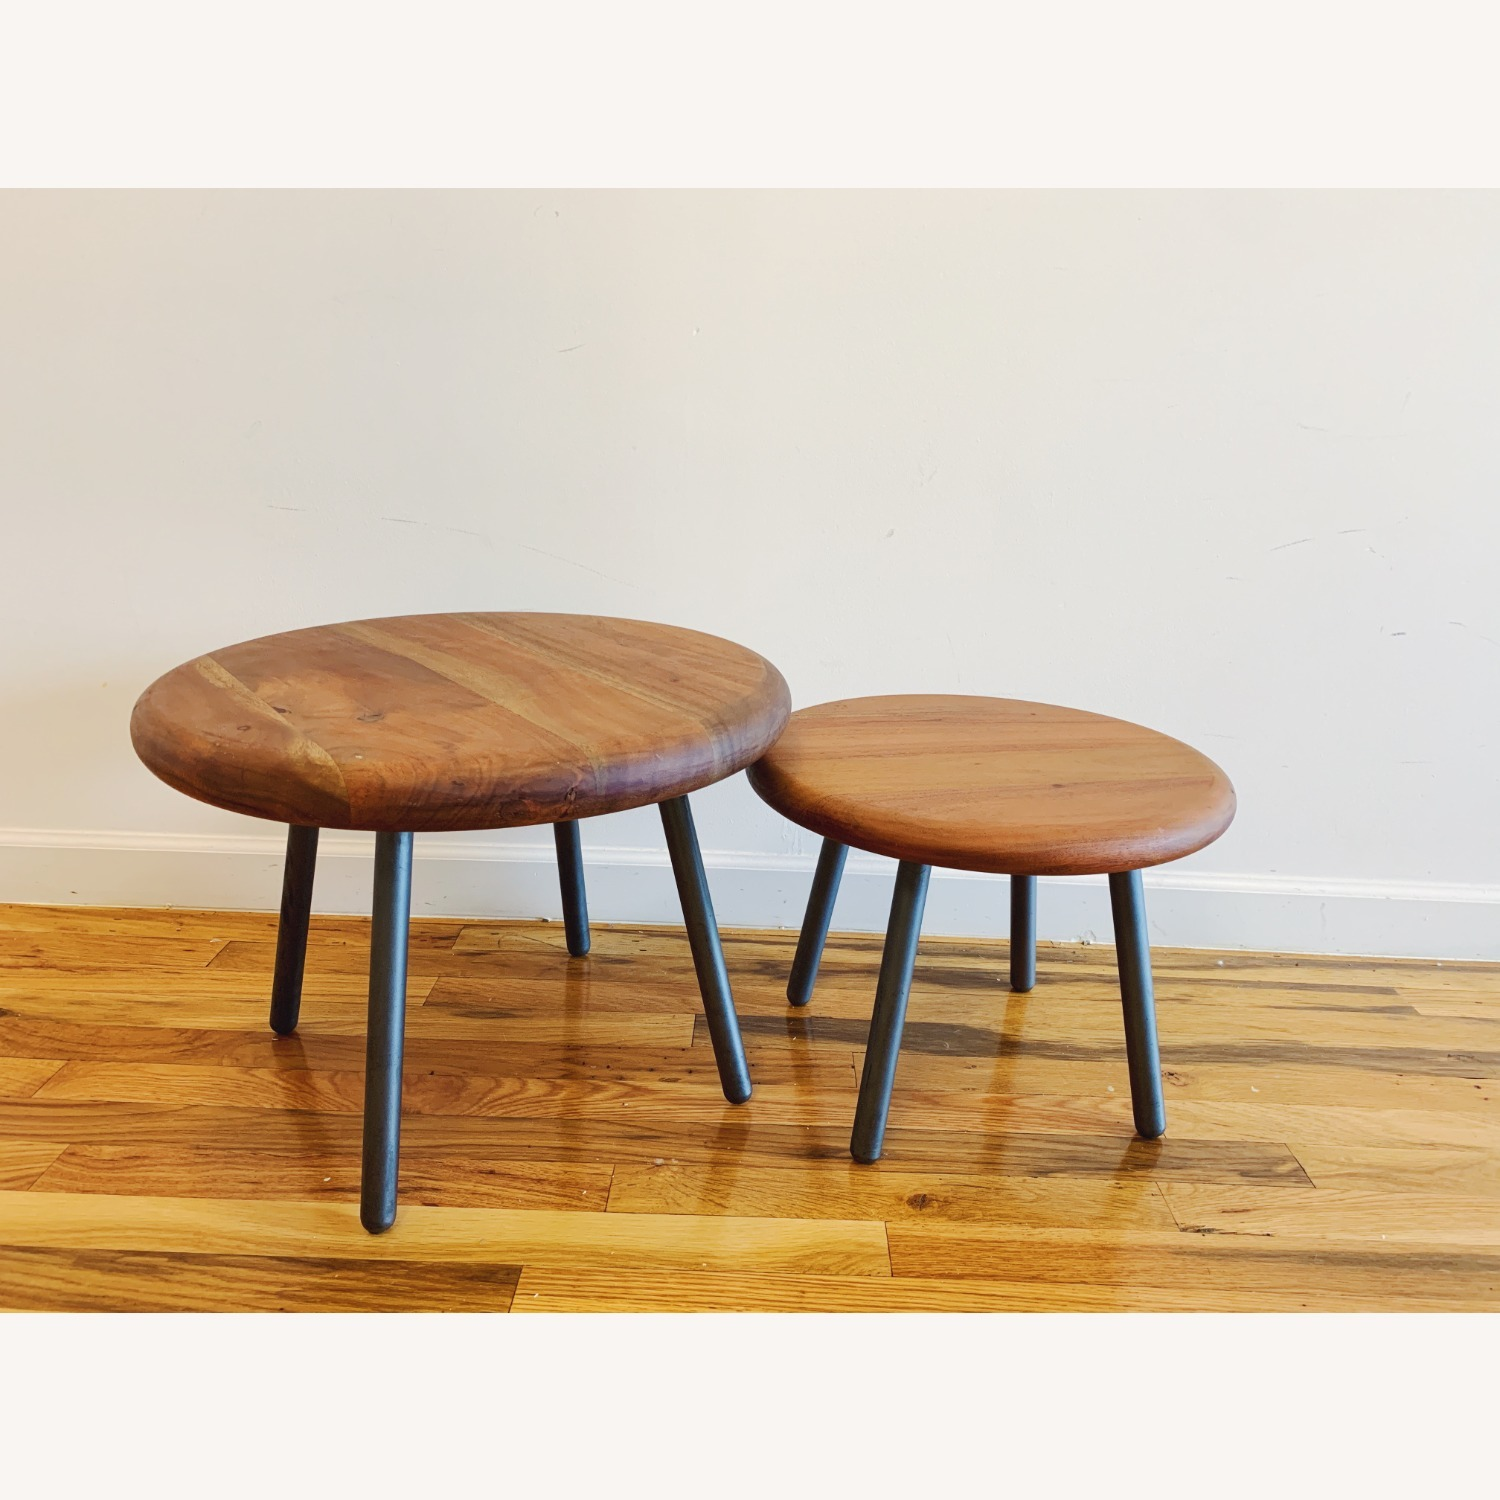 CB2 Wafer 2 Piece Nesting Table Set - image-2